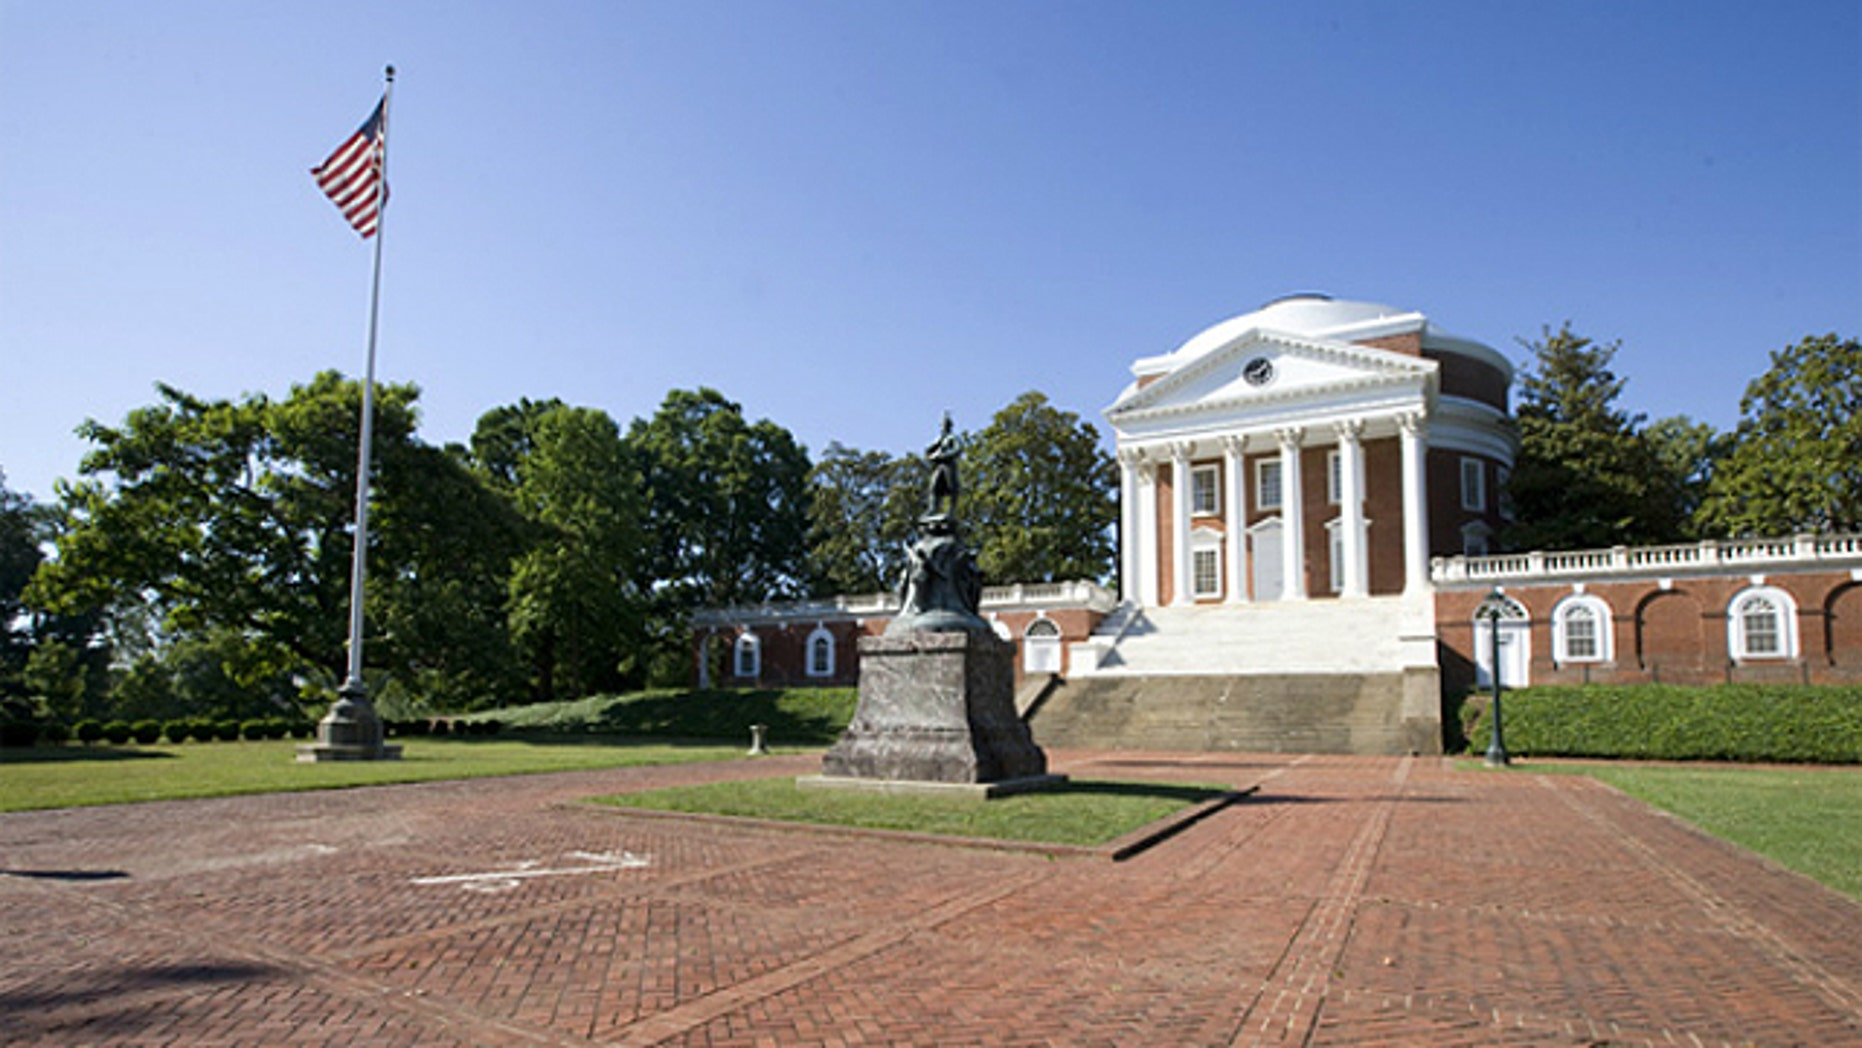 The University of Virginia, seen above, was named to the list for the second consecutive year, along with The College of William & Mary, the University of Pennsylvania and the University of Tennessee-Knoxville.